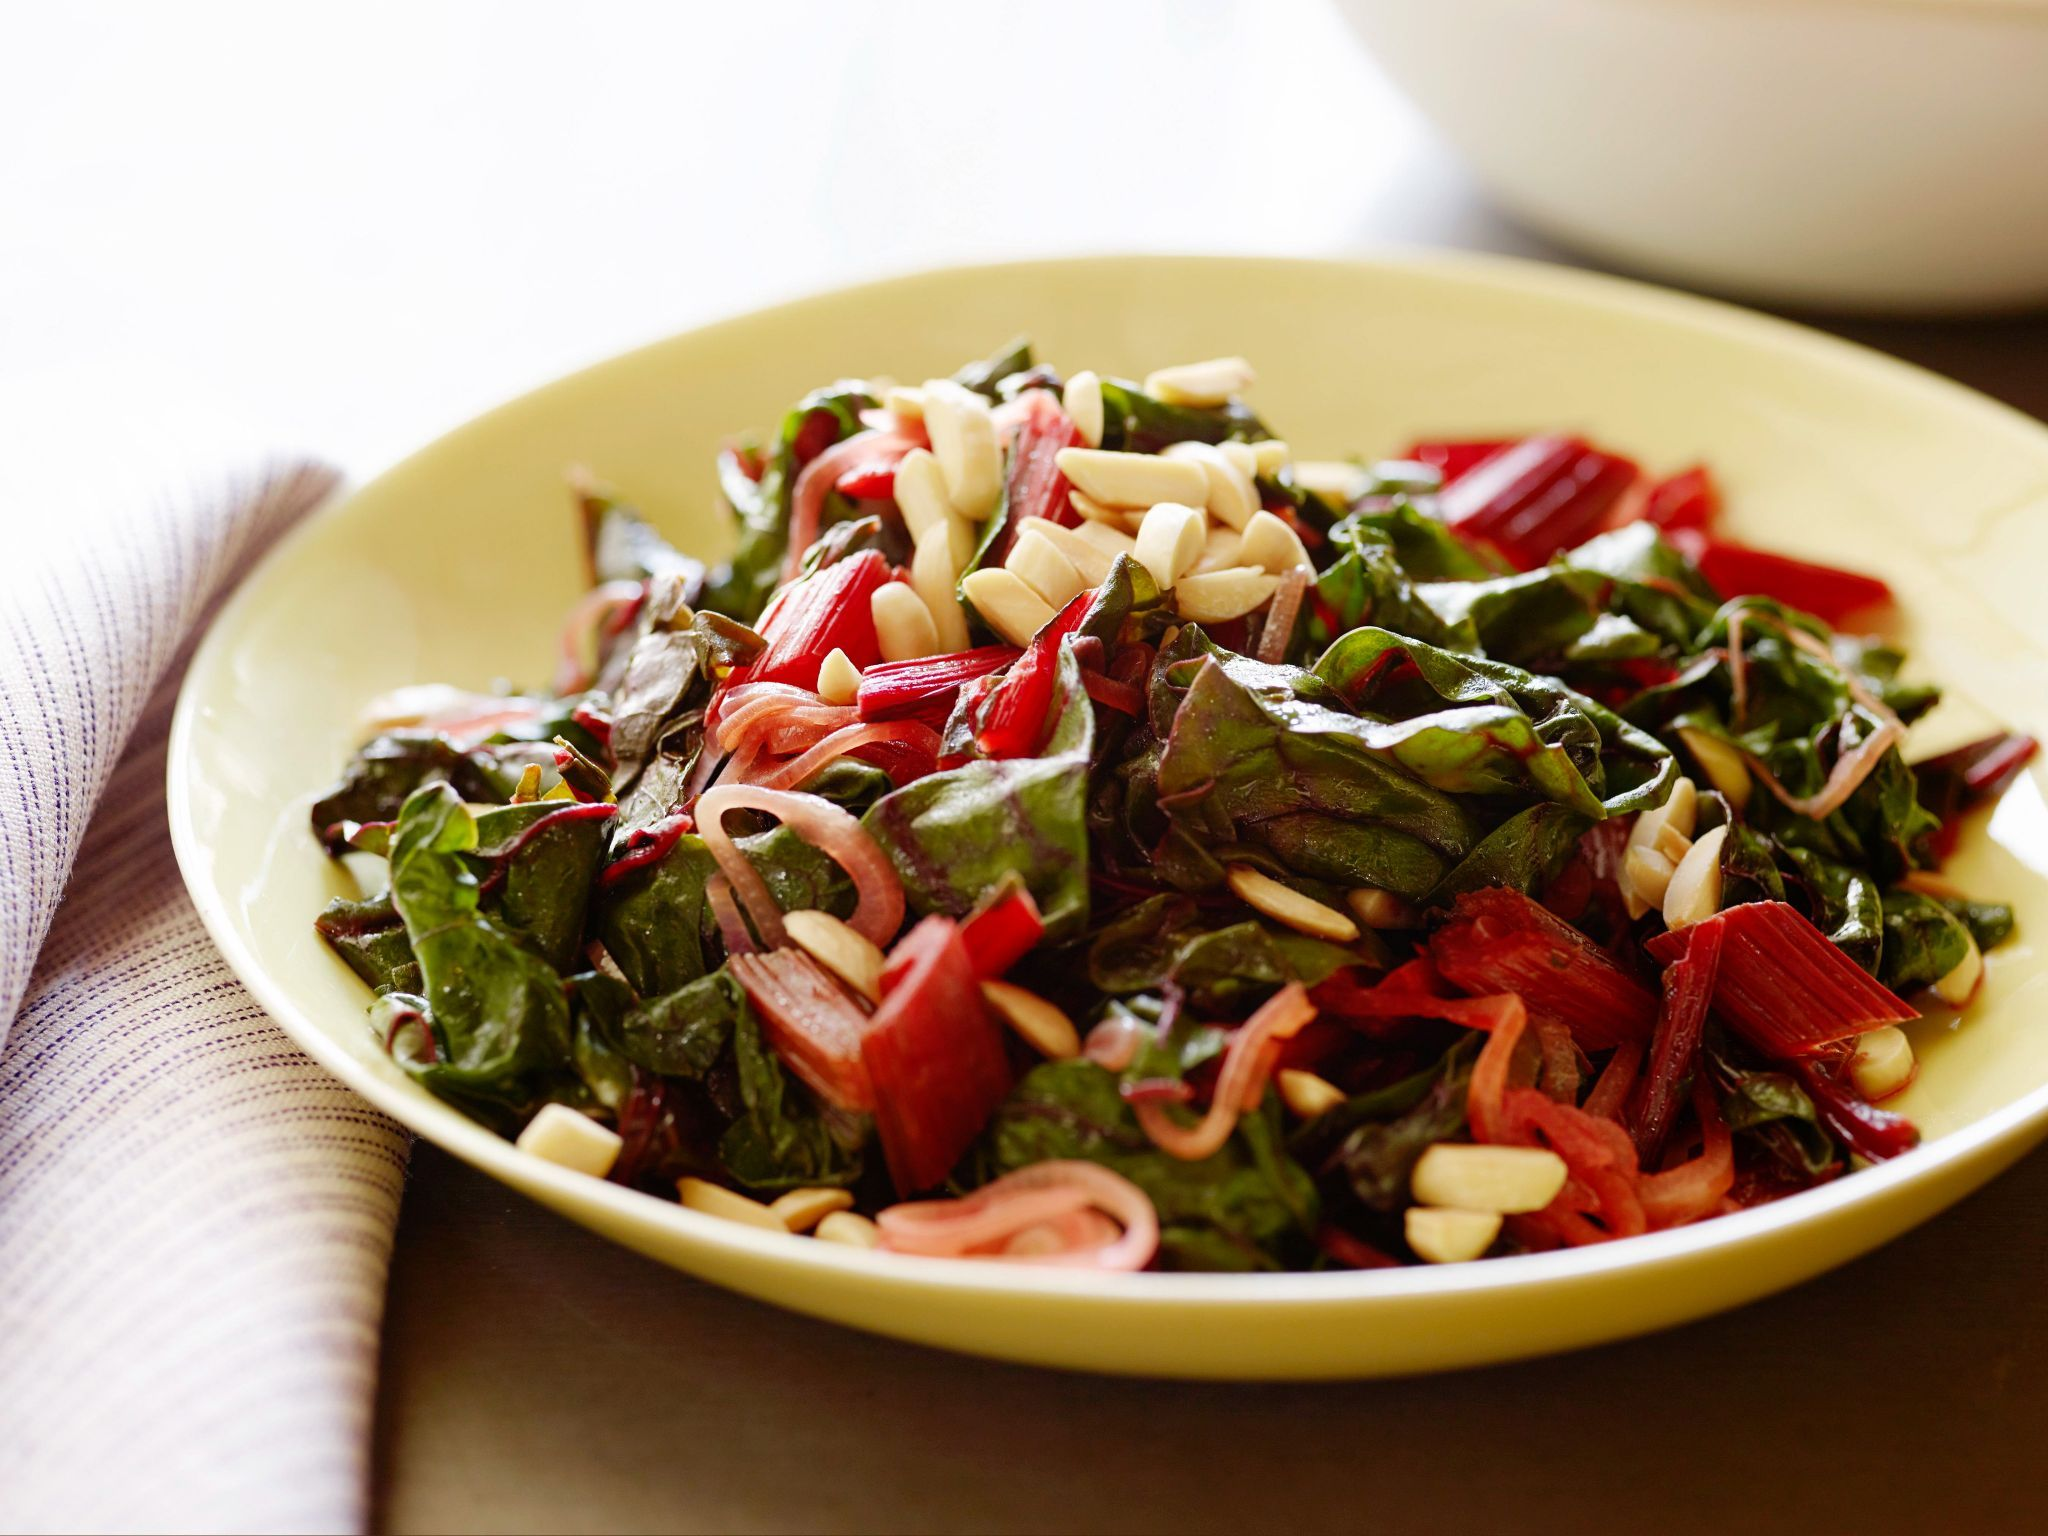 Sauteed swiss chard with shallots and almonds recipe sauteed sauteed swiss chard with shallots and almonds chard recipesveggie recipesdinner recipeseasy forumfinder Choice Image